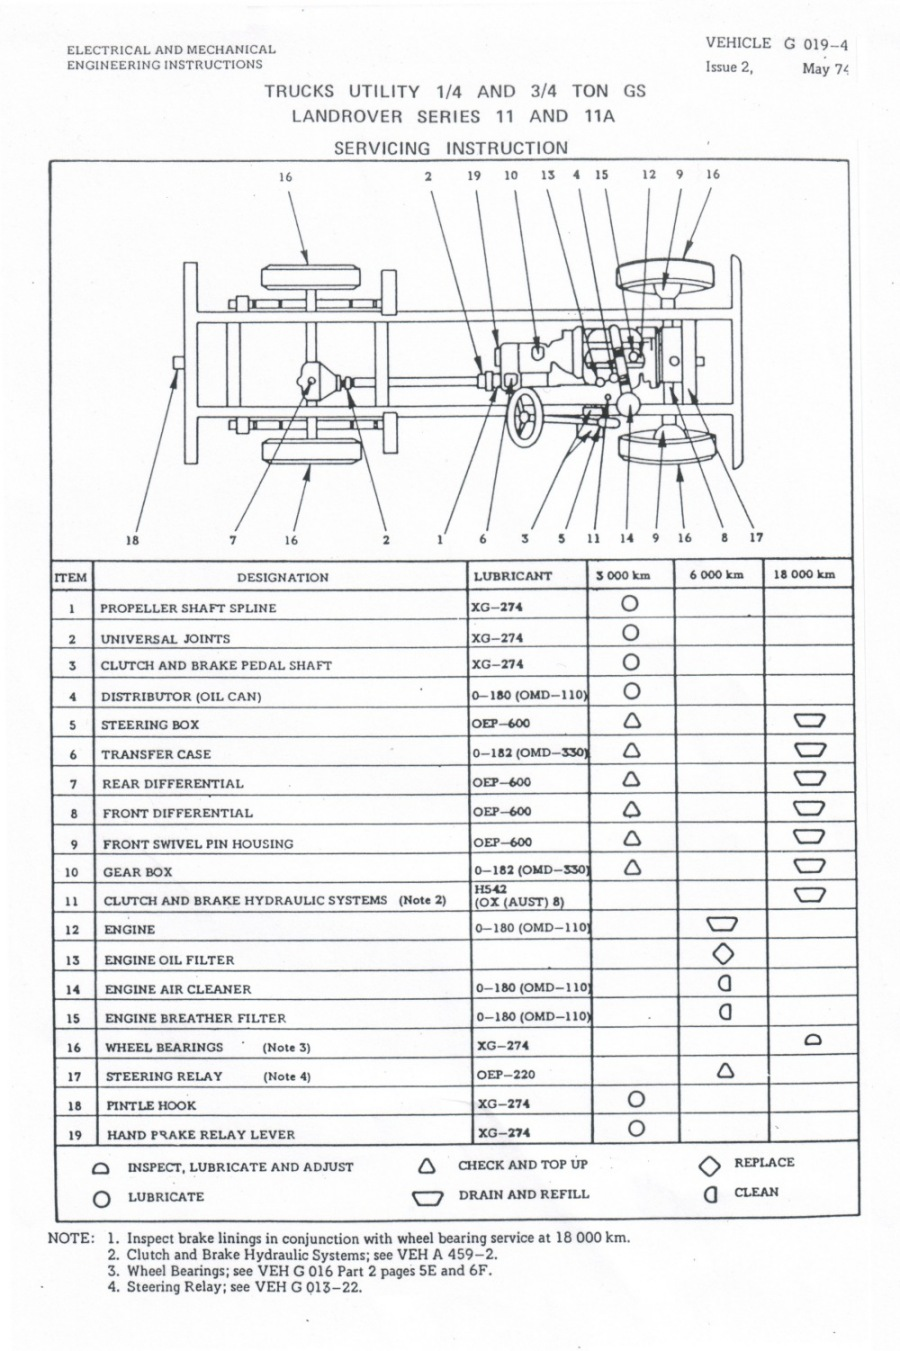 1974 Series 3 Land Rover Wiring Diagram Strategy 2001 Images Gallery